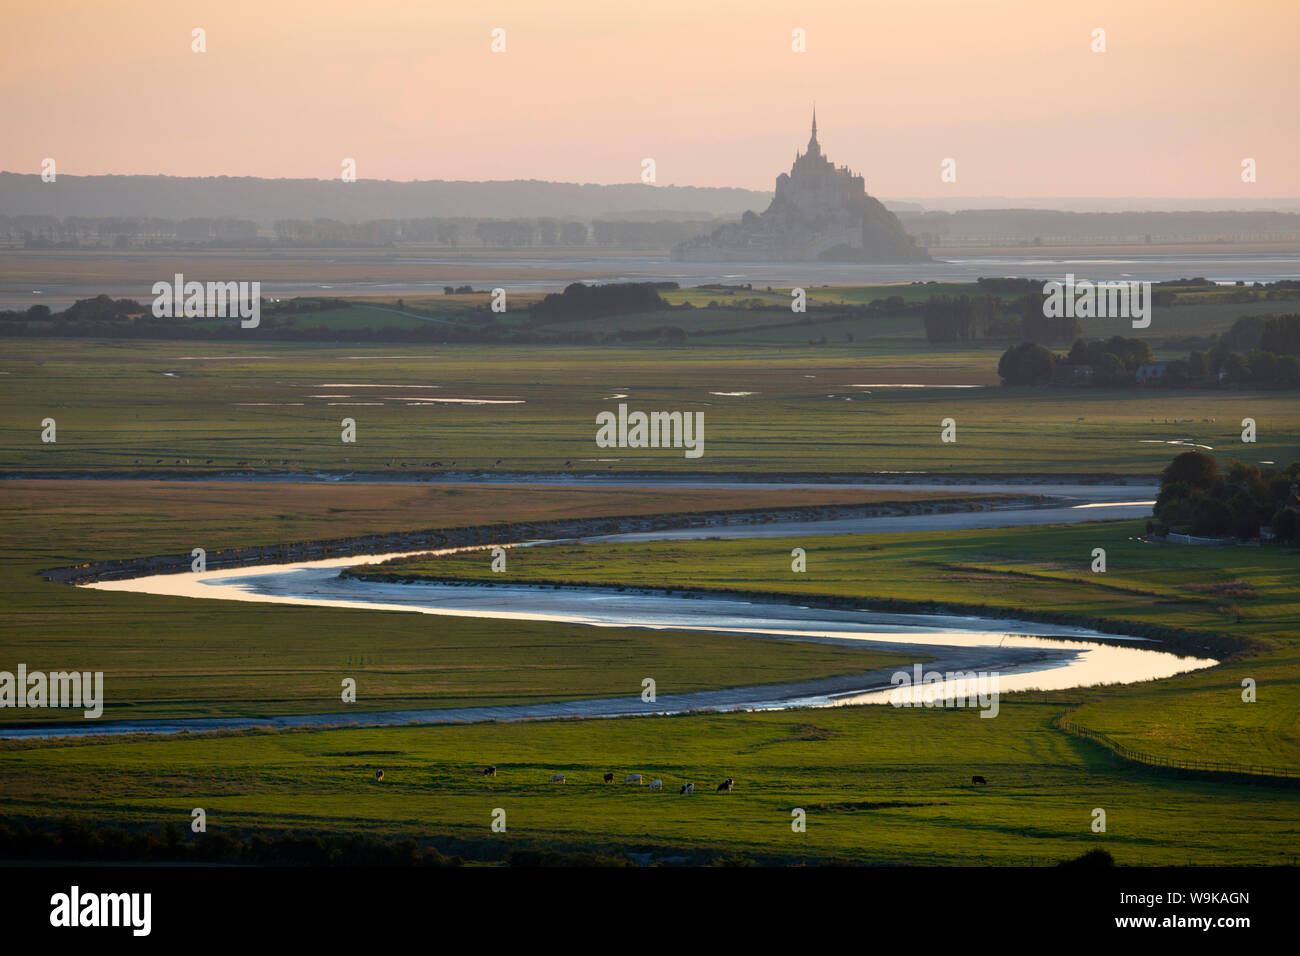 View over meandering river to Bay of Mont Saint-Michel, UNESCO World Heritage Site, from Jardin des Plantes viewpoint, Avranches, Normandy, France Stock Photo